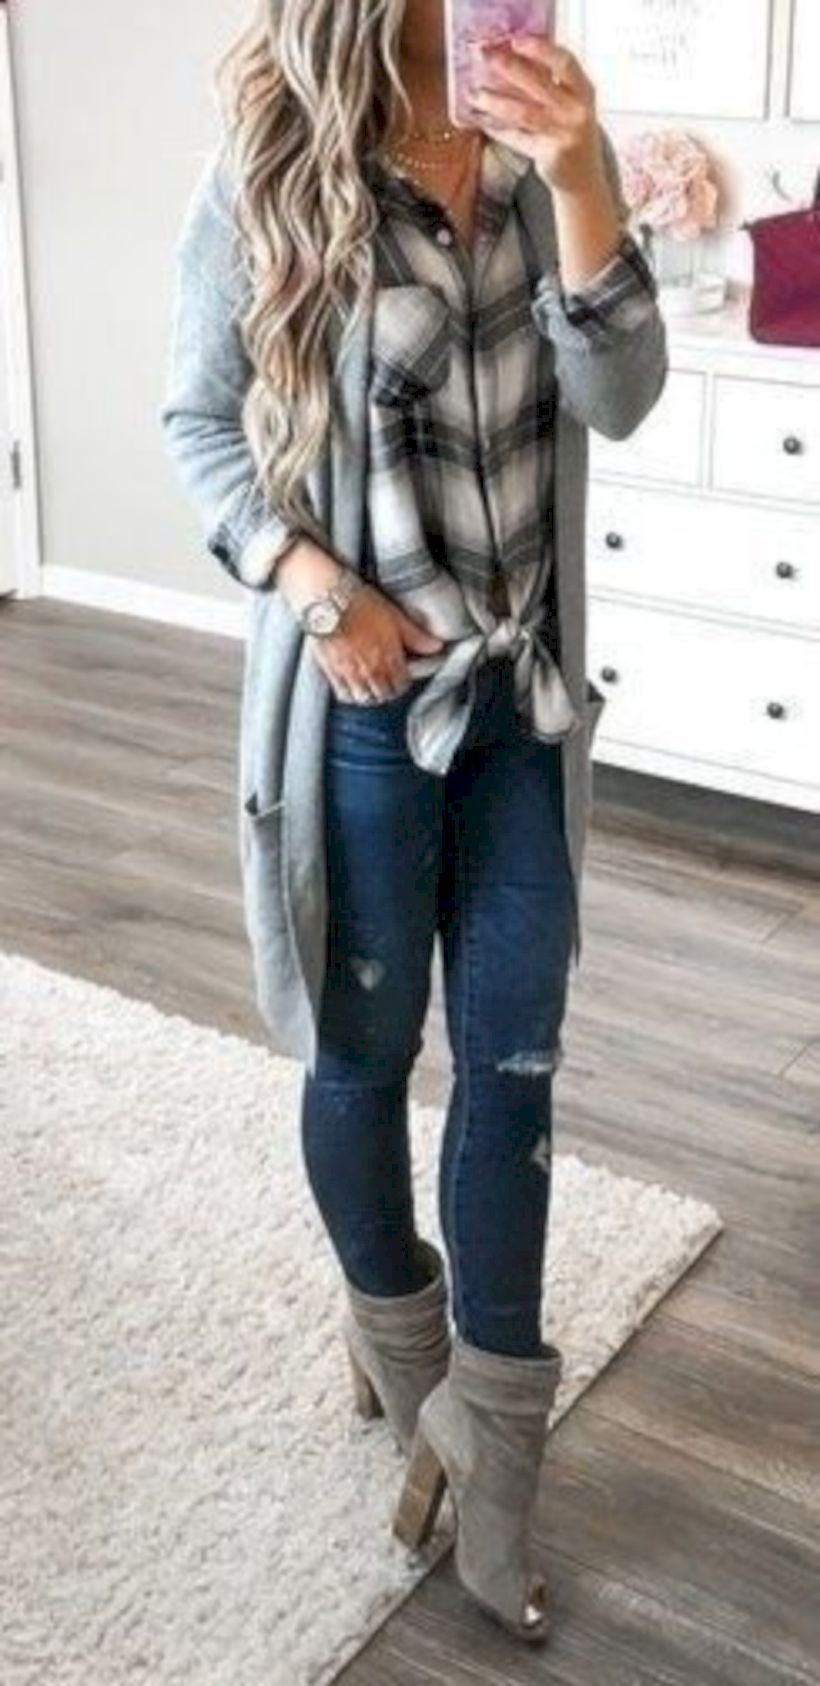 49 Trending Fall Outfit Ideas to Get Inspire